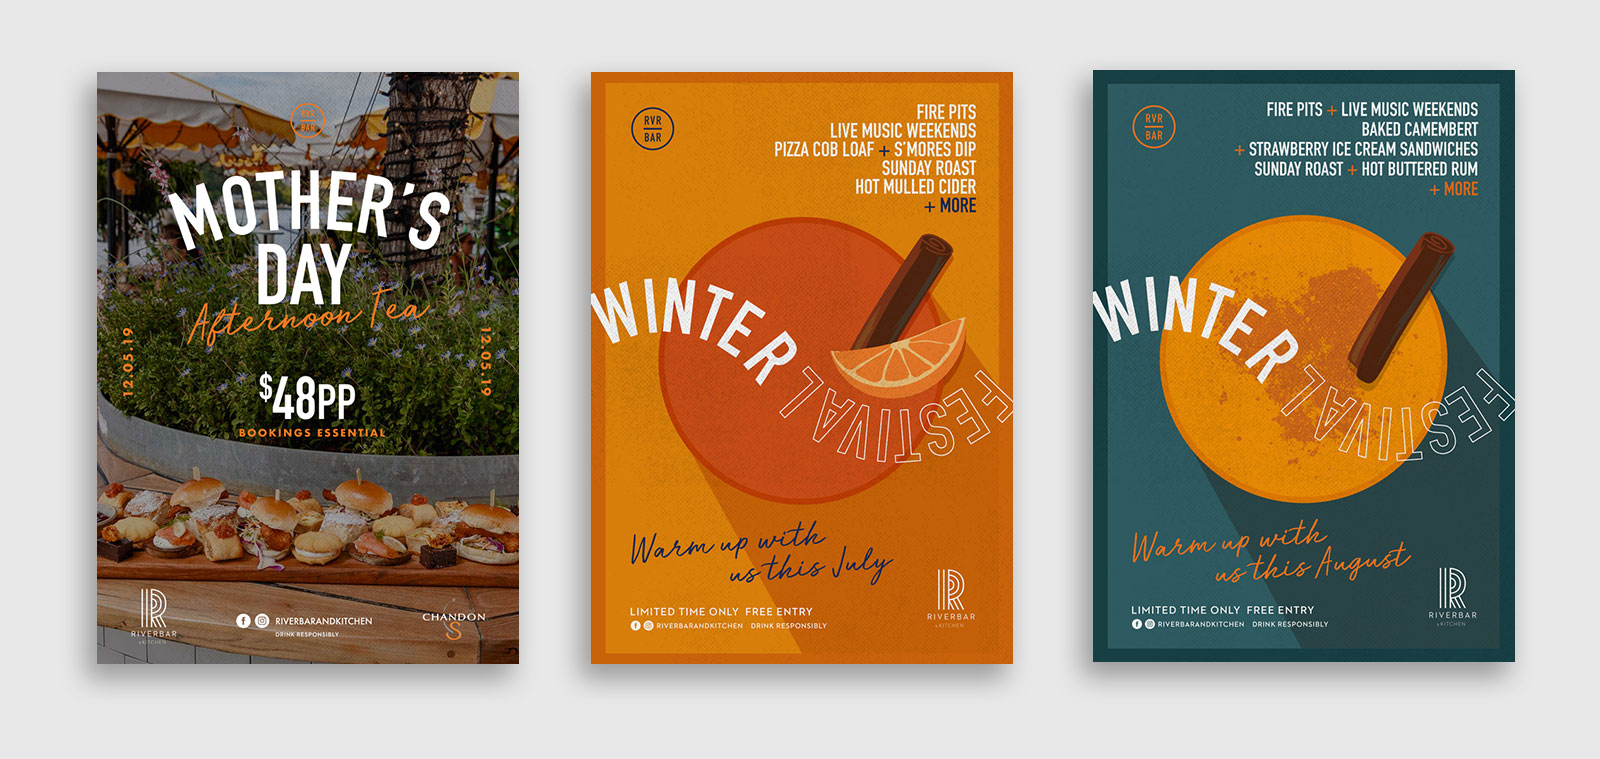 Graphic poster designs for Riverbar by distil